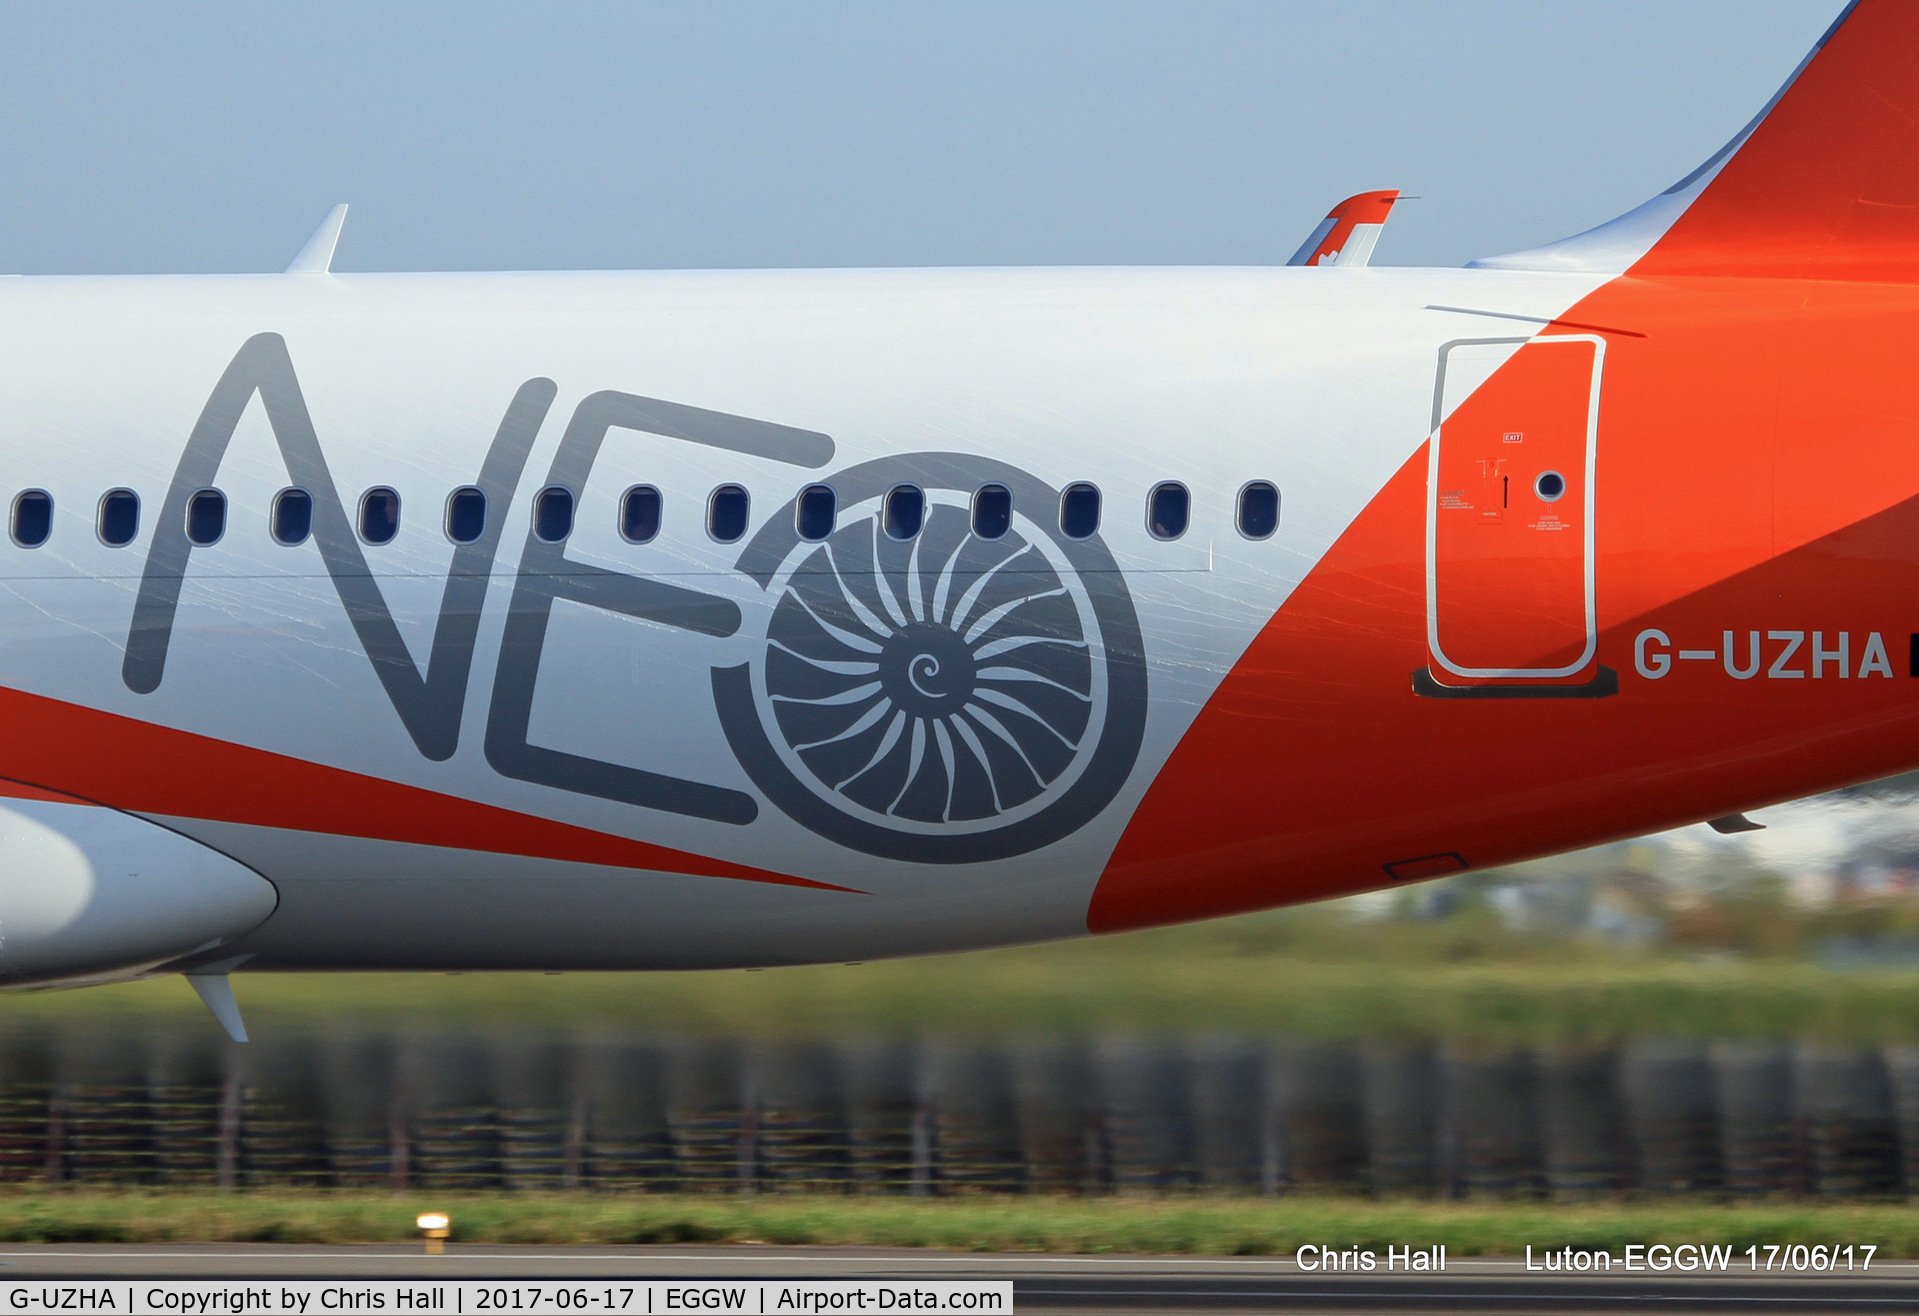 G-UZHA, 2017 Airbus A320-251NEO C/N 7649, easyJets 1st A320NEO on its 1st commercial flight